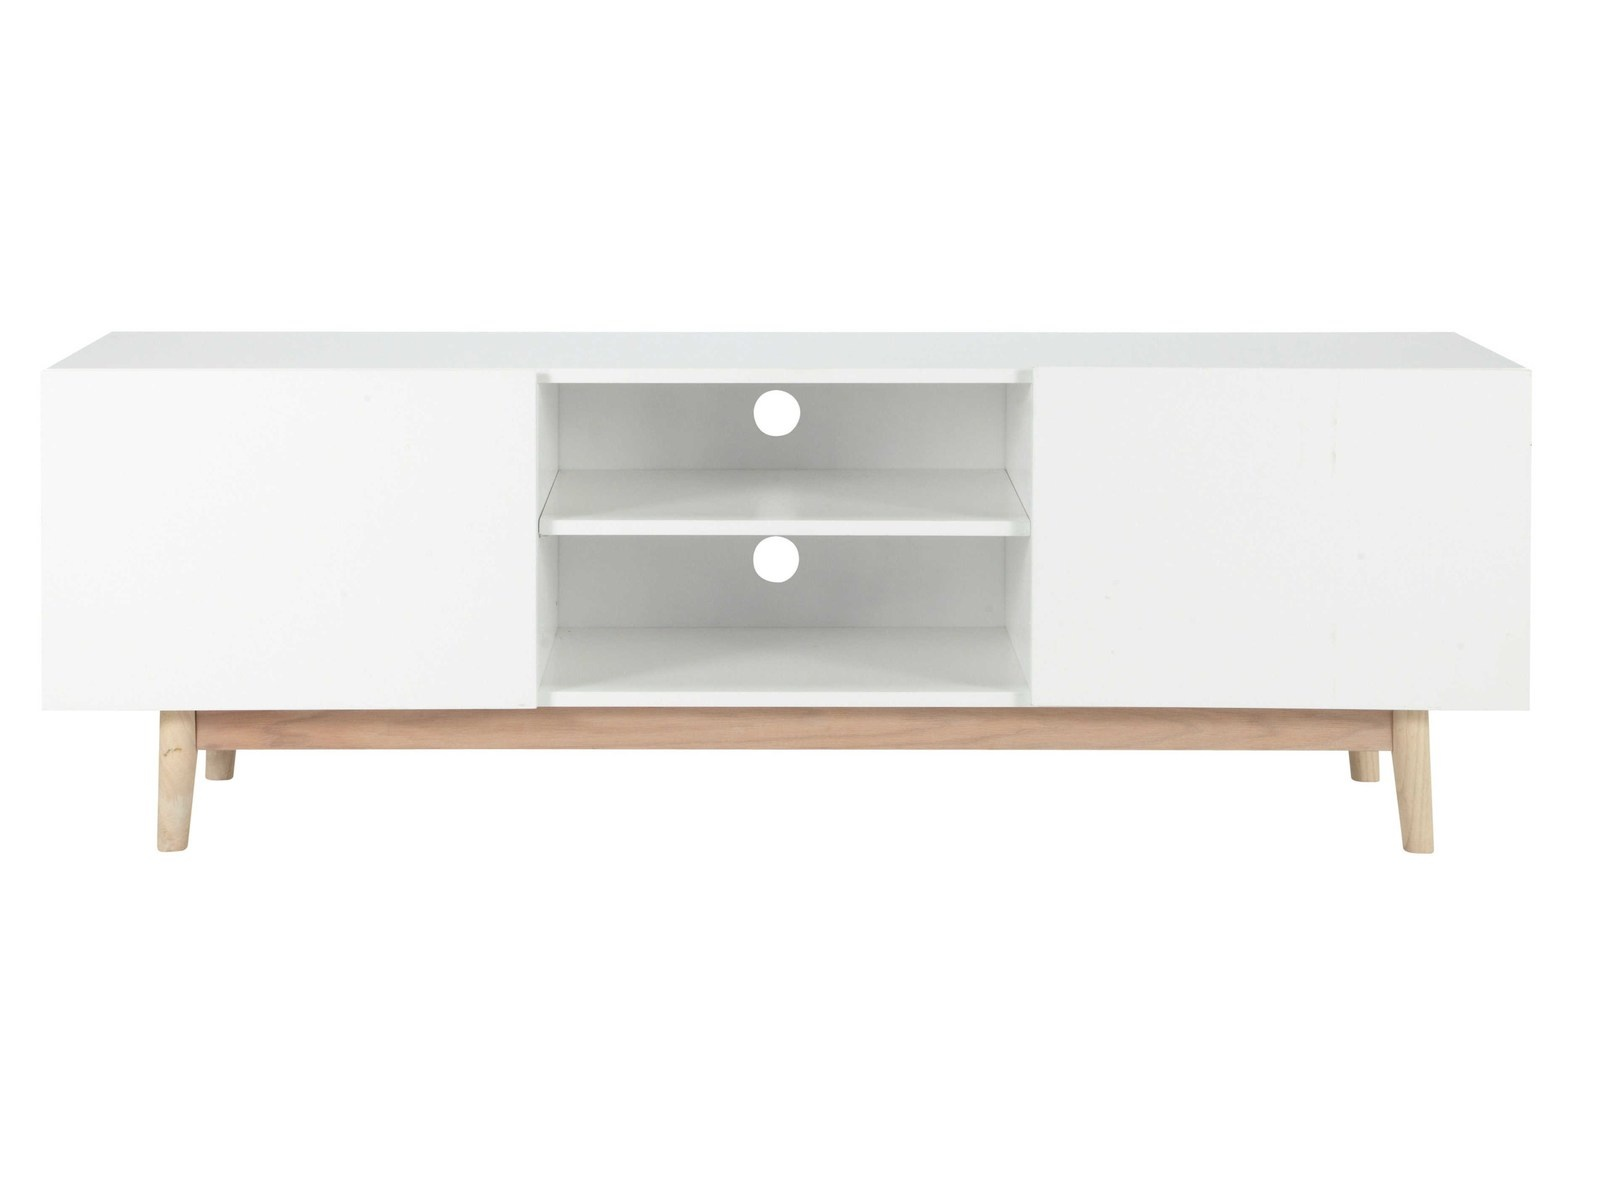 Ikea Meuble Tv Scandinave - Meuble Tv Scandinave Ikea Sellingstg Com[mjhdah]http://www.miliboo.com/meuble-tv-scandinave-blanc-brillant-et-frene-180cm-melka-32041-principale_0_0_0.jpg